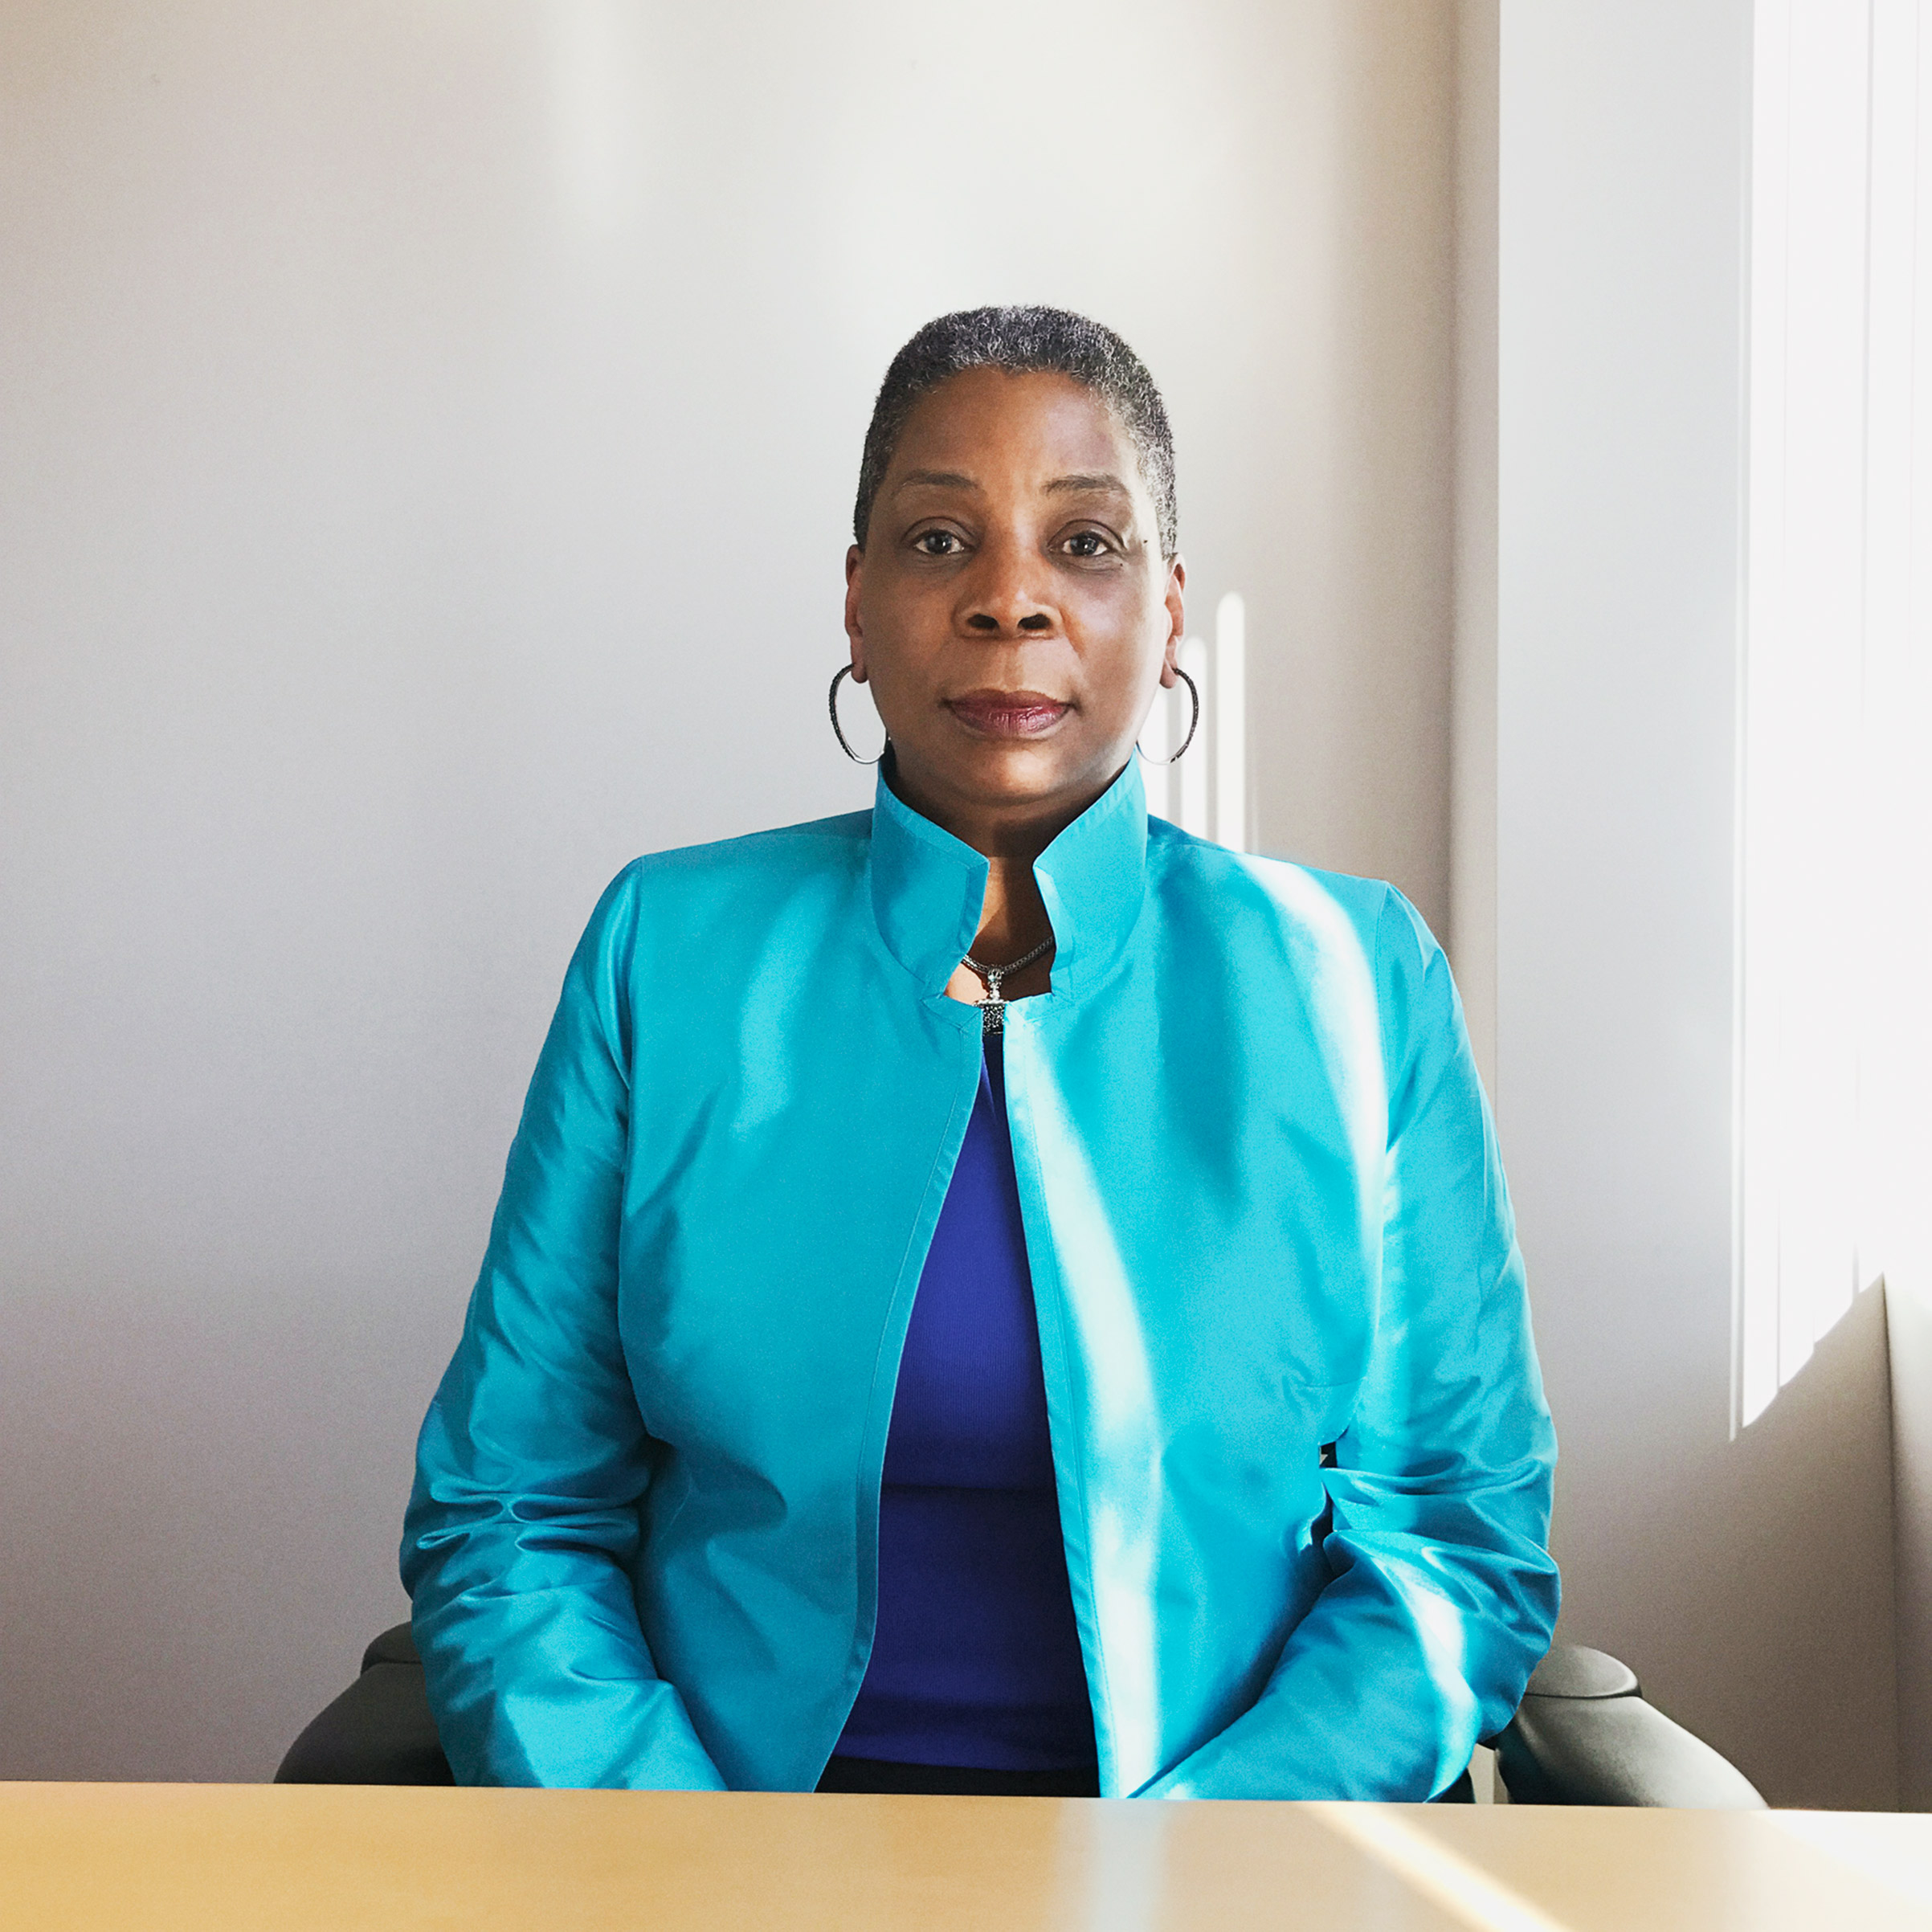 Portrait of Ursula Burns, photographed in the Xerox office in Stamford CT, November 11, 2016.